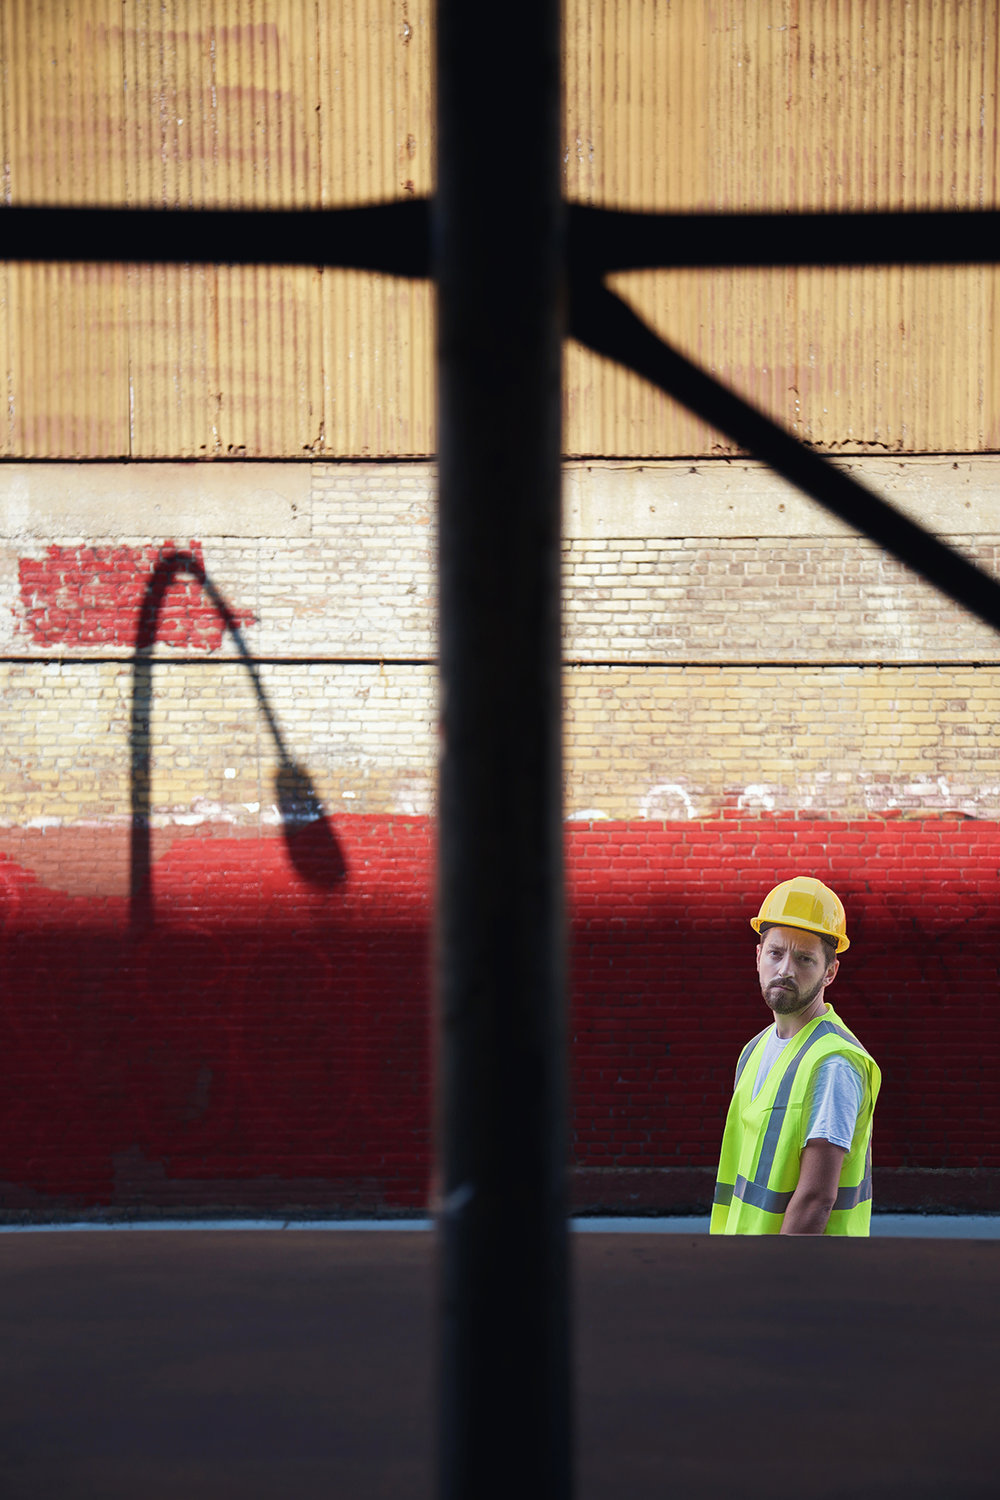 nyc - lampost and streetworker.jpg